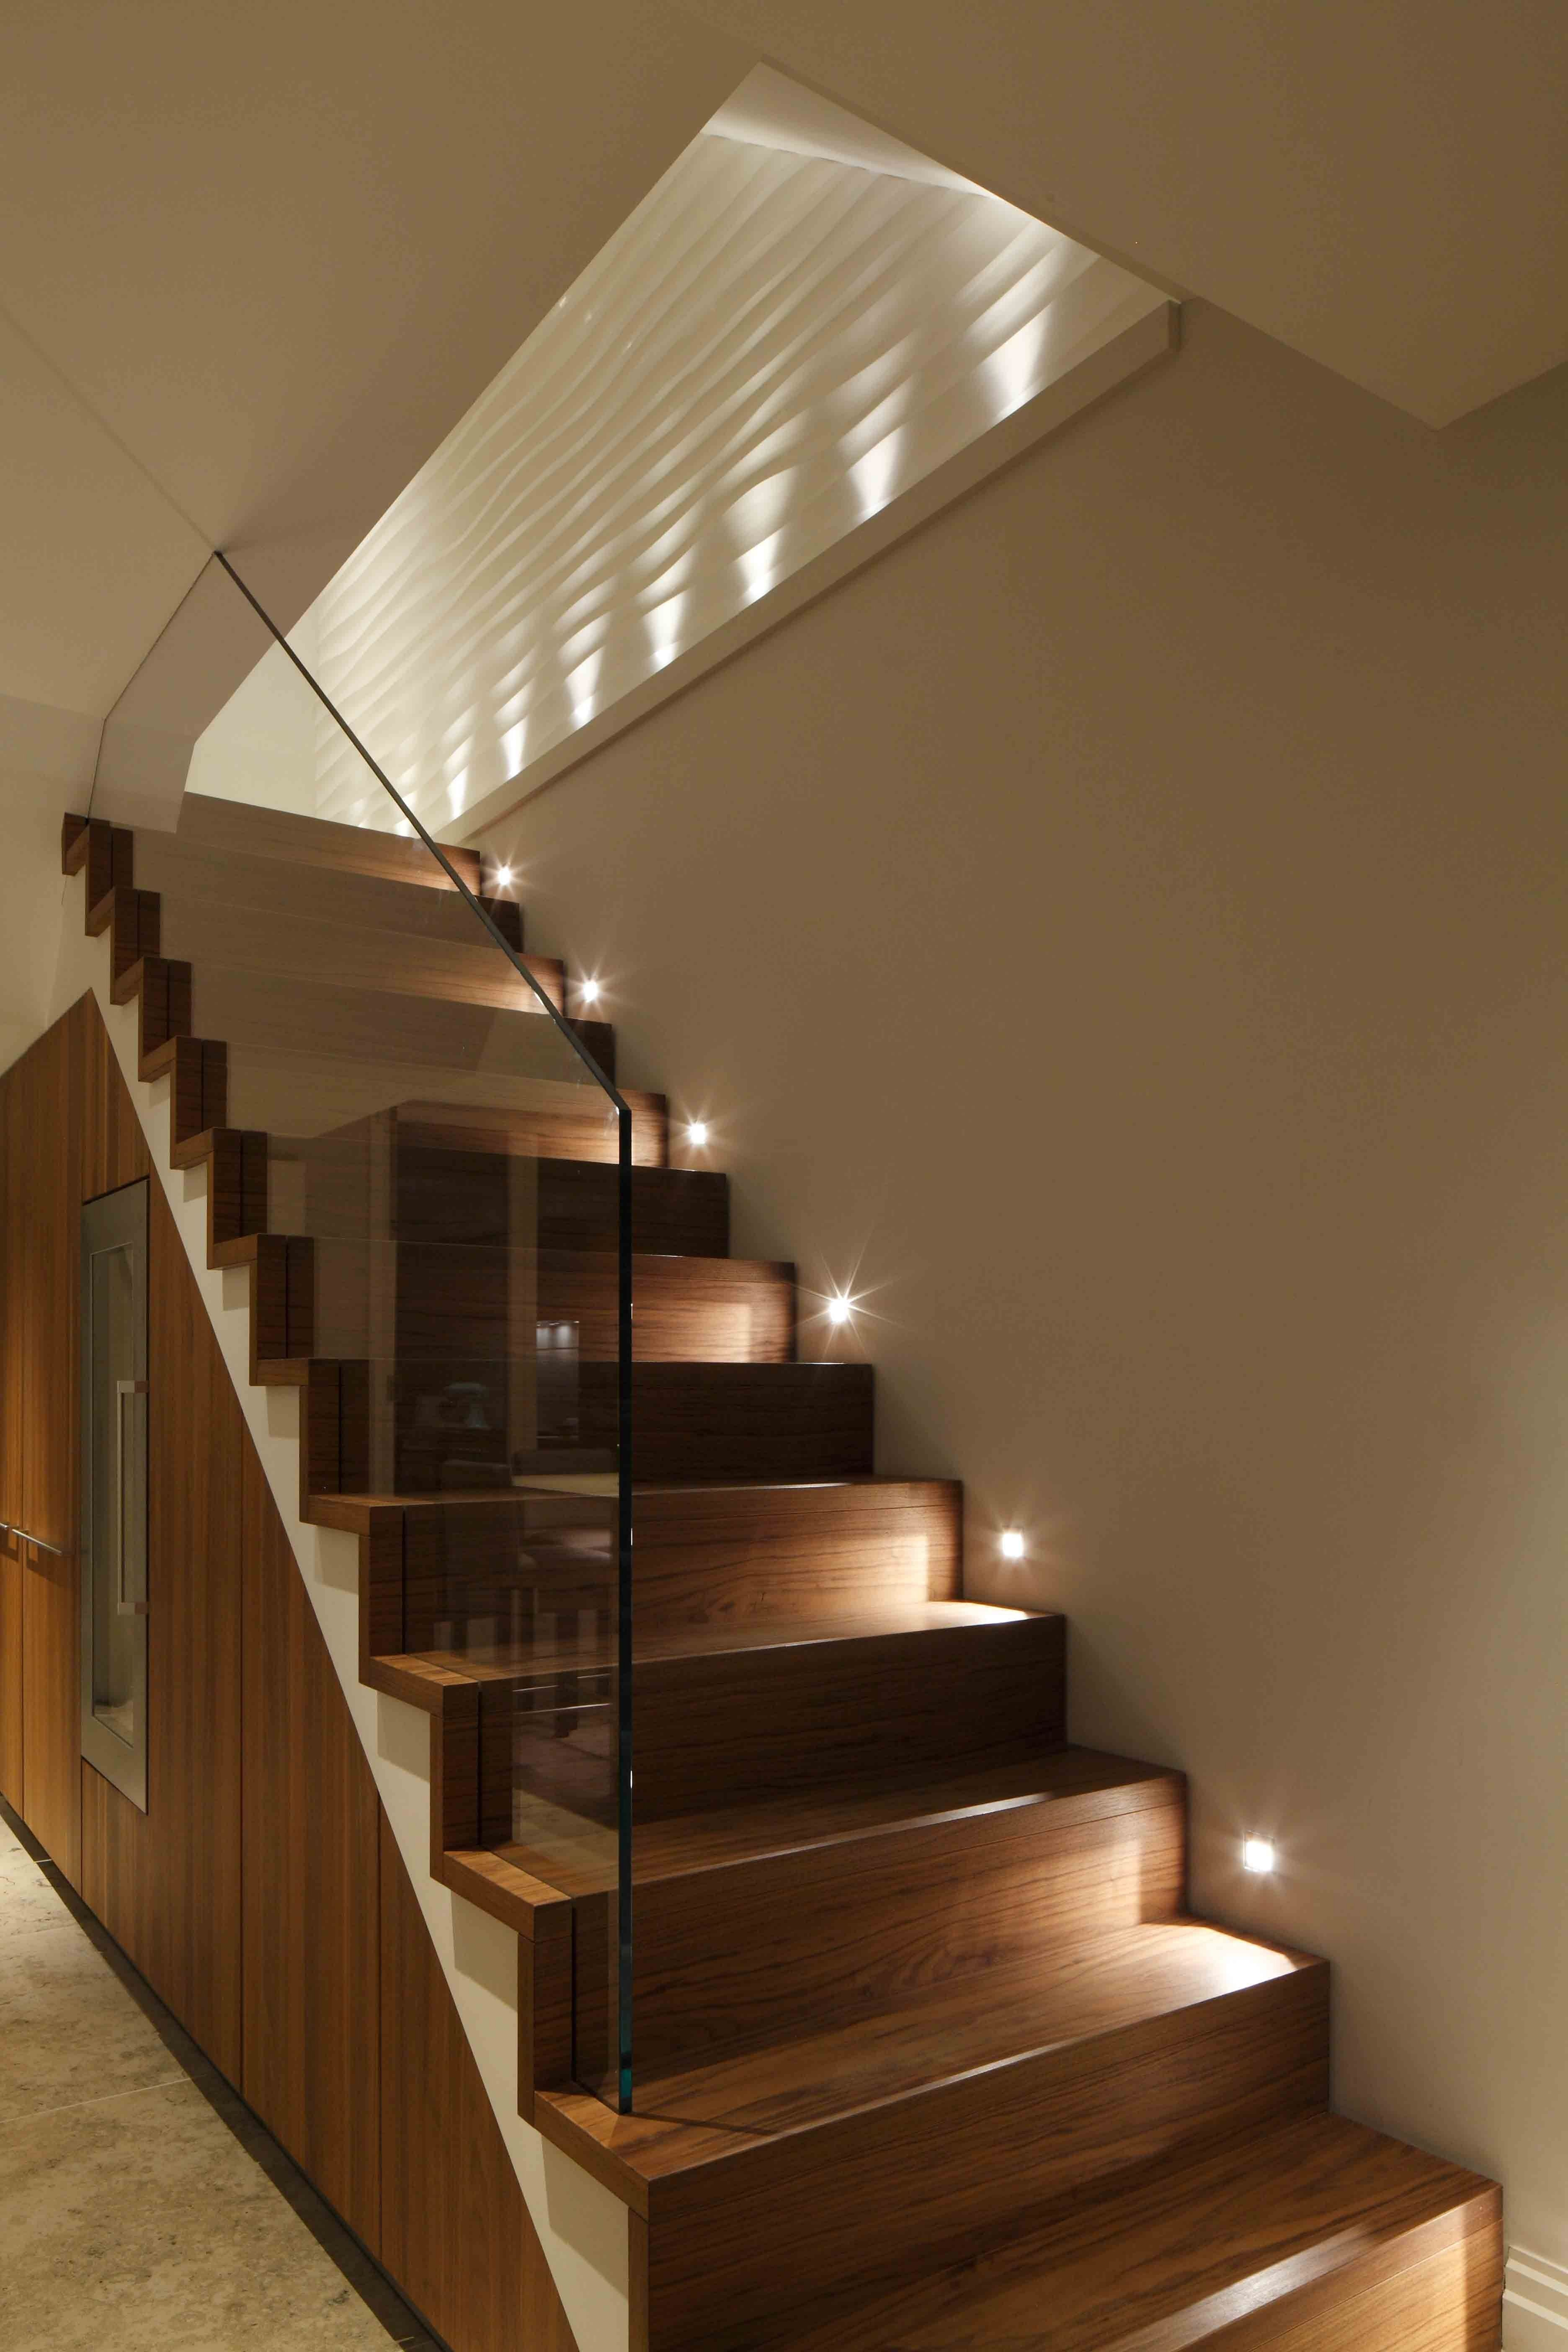 Interesting 8 Indoor Staircase Lighting Design Ideas For Your Home #staircaseideas